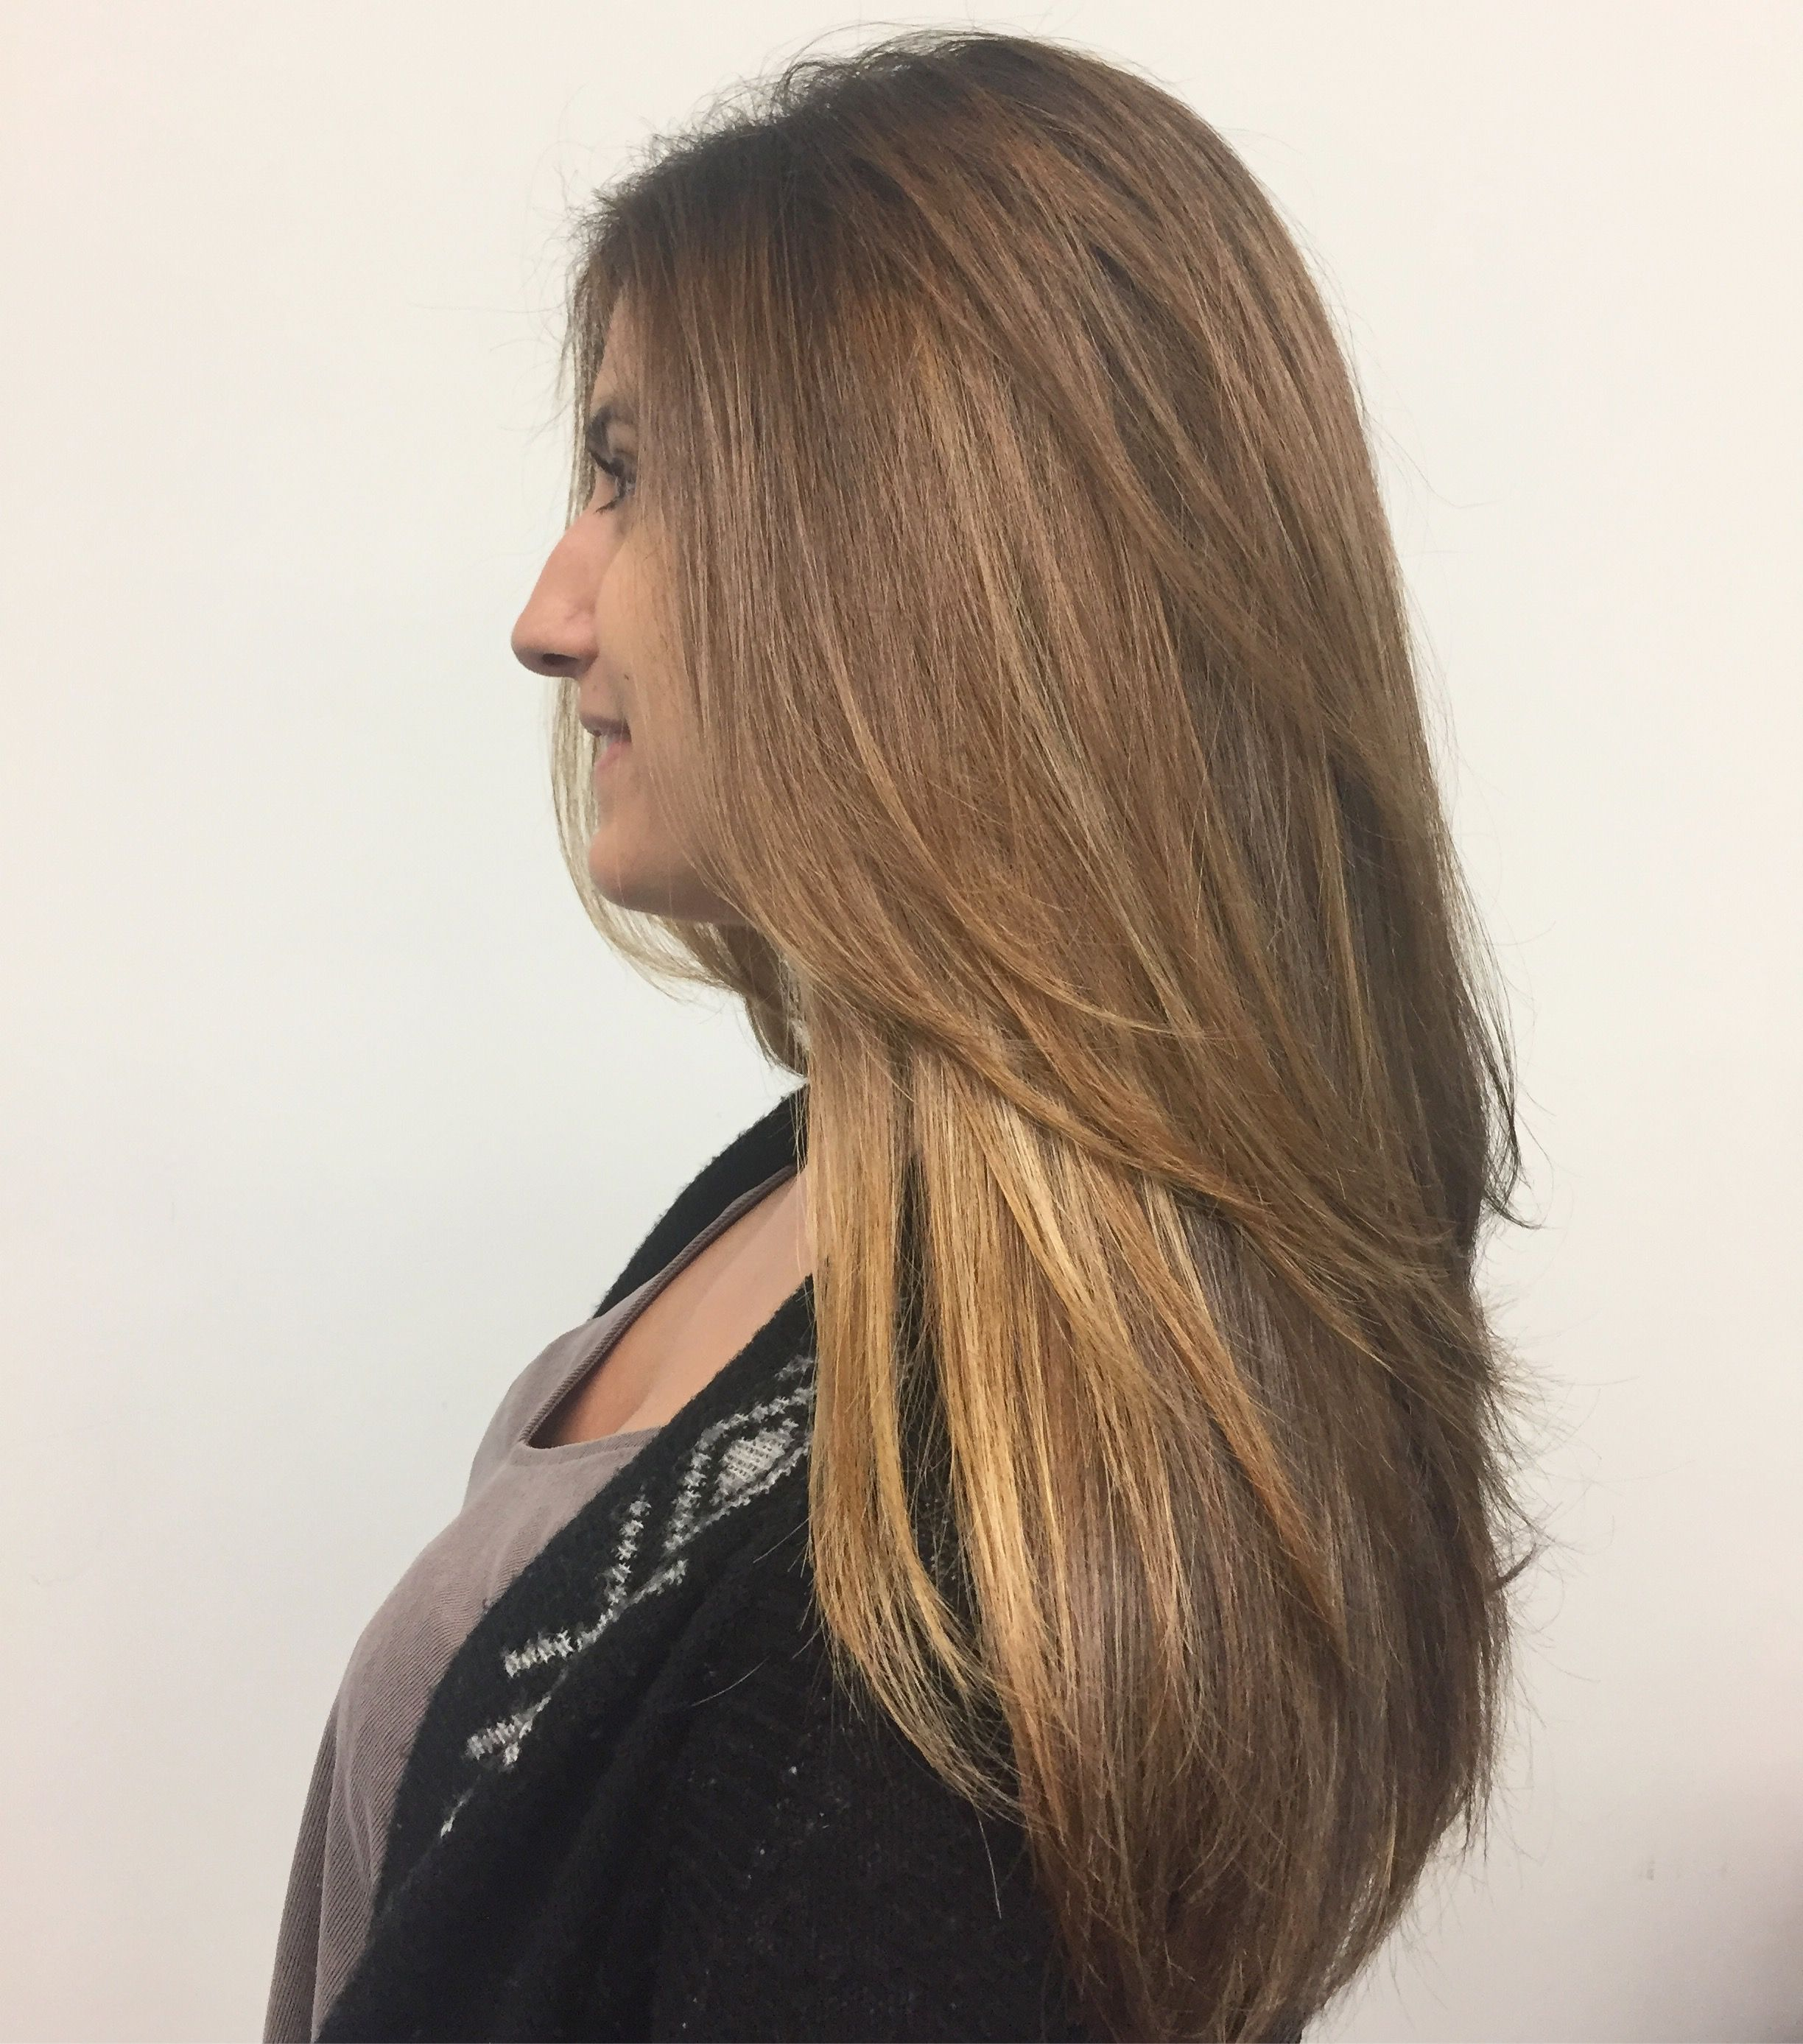 Haircut And Color By Haley Fruen Minneapolis With Images Haircut And Color